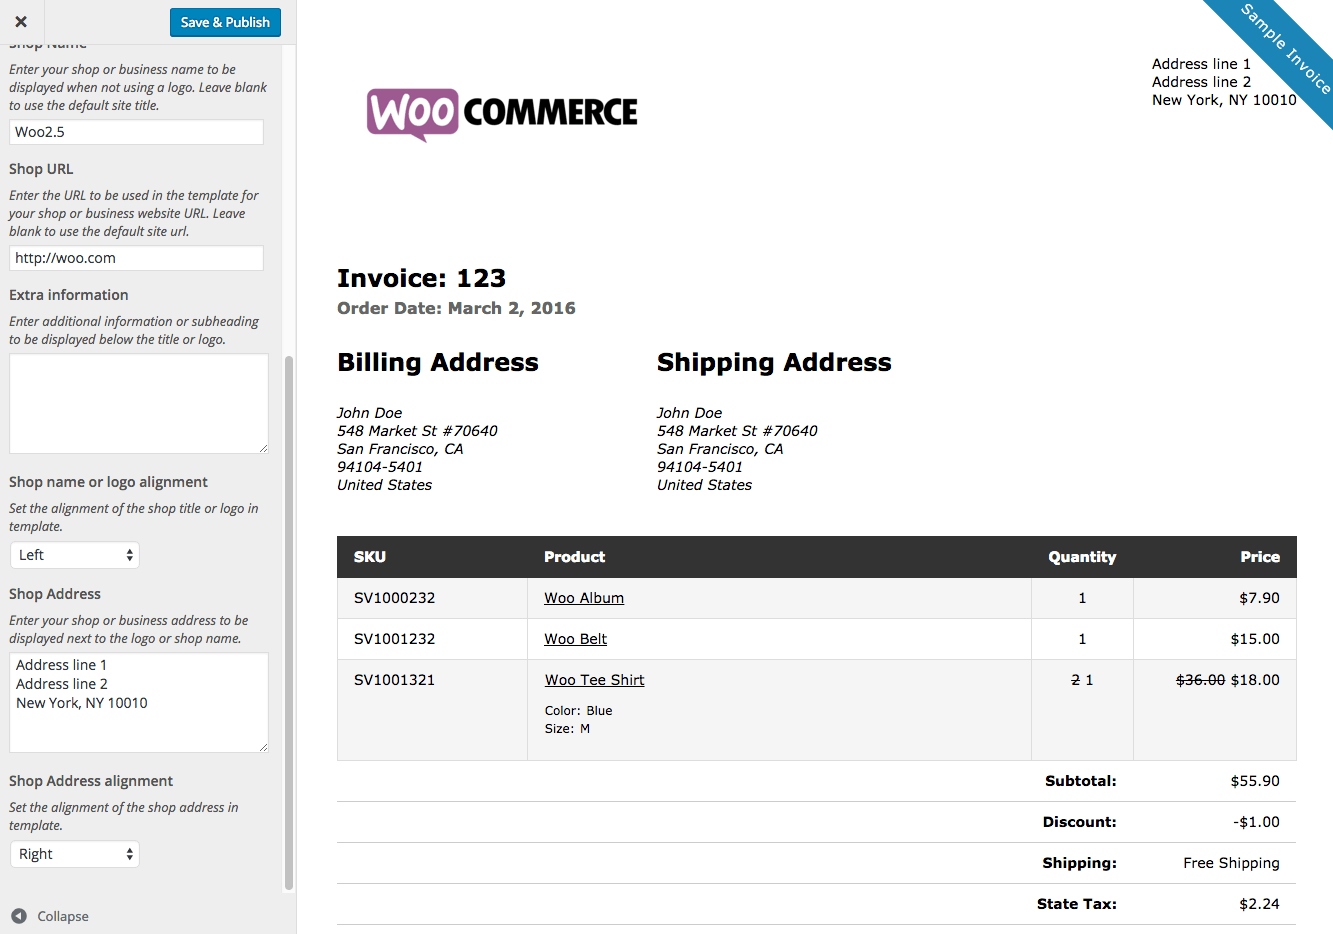 Sandiegolocksmithsus  Winning Print Invoices Amp Packing Lists  Woocommerce With Gorgeous Woocommerce Print Invoices  Packing Lists Customizer With Beauteous Fake Paypal Invoice Generator Also Photographer Invoice In Addition Define Invoice Price And Pay Paypal Invoice With Credit Card As Well As How To Create Recurring Invoices In Quickbooks Additionally Trucking Invoice From Woocommercecom With Sandiegolocksmithsus  Gorgeous Print Invoices Amp Packing Lists  Woocommerce With Beauteous Woocommerce Print Invoices  Packing Lists Customizer And Winning Fake Paypal Invoice Generator Also Photographer Invoice In Addition Define Invoice Price From Woocommercecom